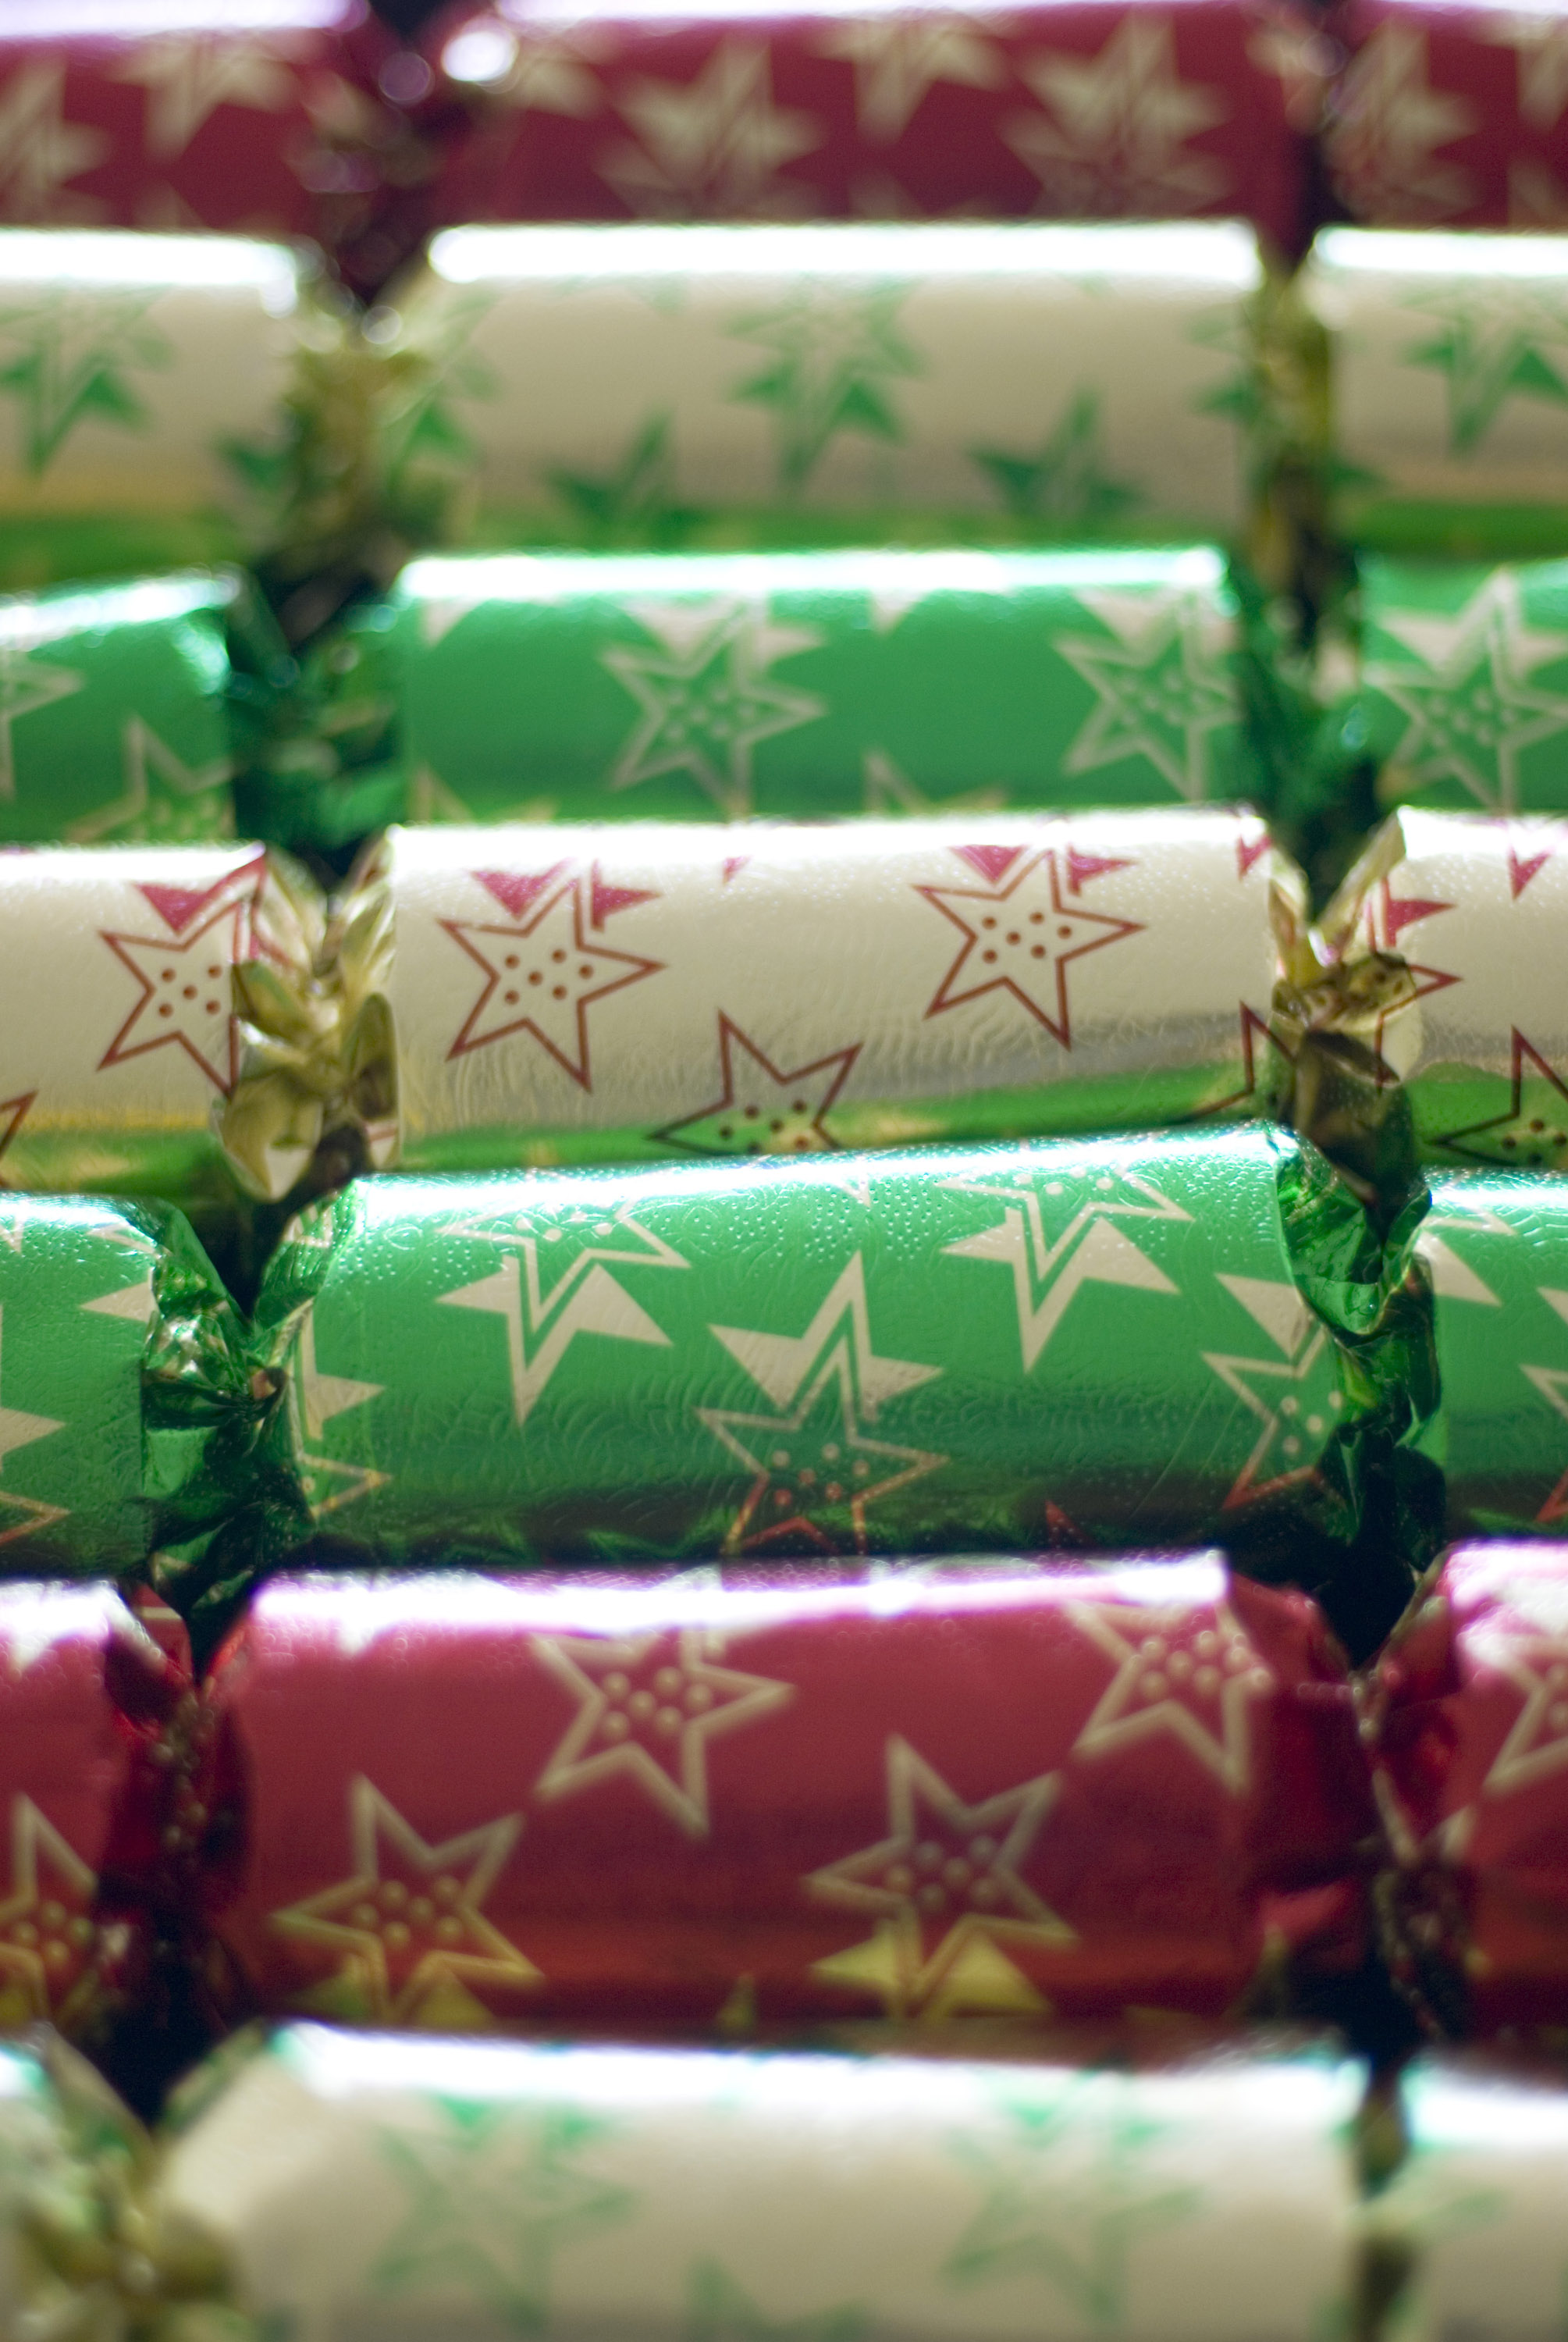 a row of christmas crackers imaged with a narrow depth of field (out of focus in the backbackground and foreground)